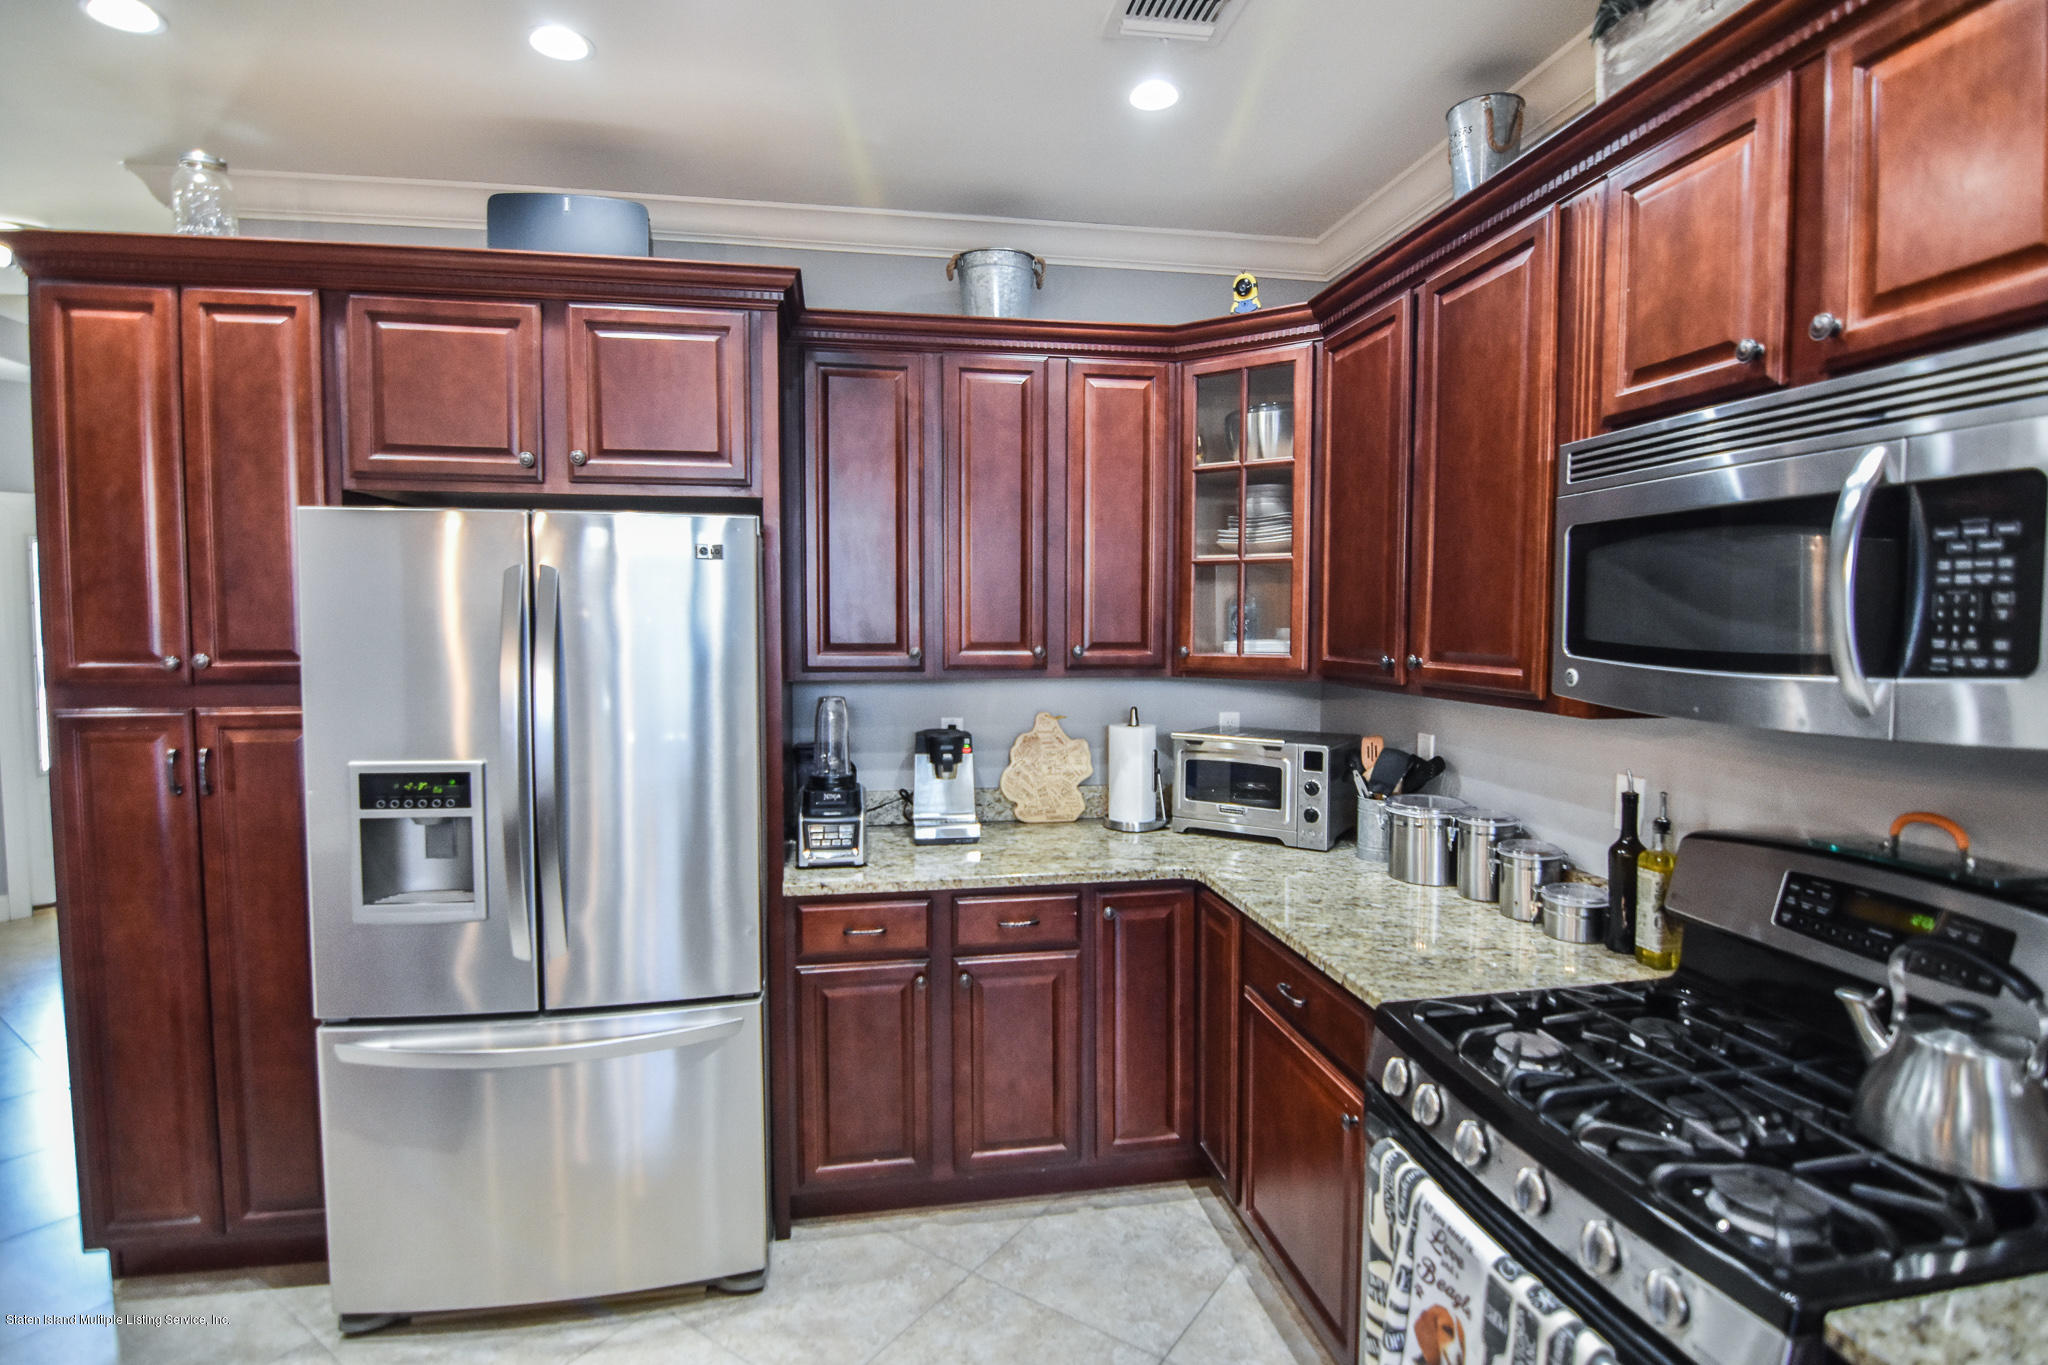 Single Family - Attached 74 Tiller Court  Staten Island, NY 10309, MLS-1126911-9